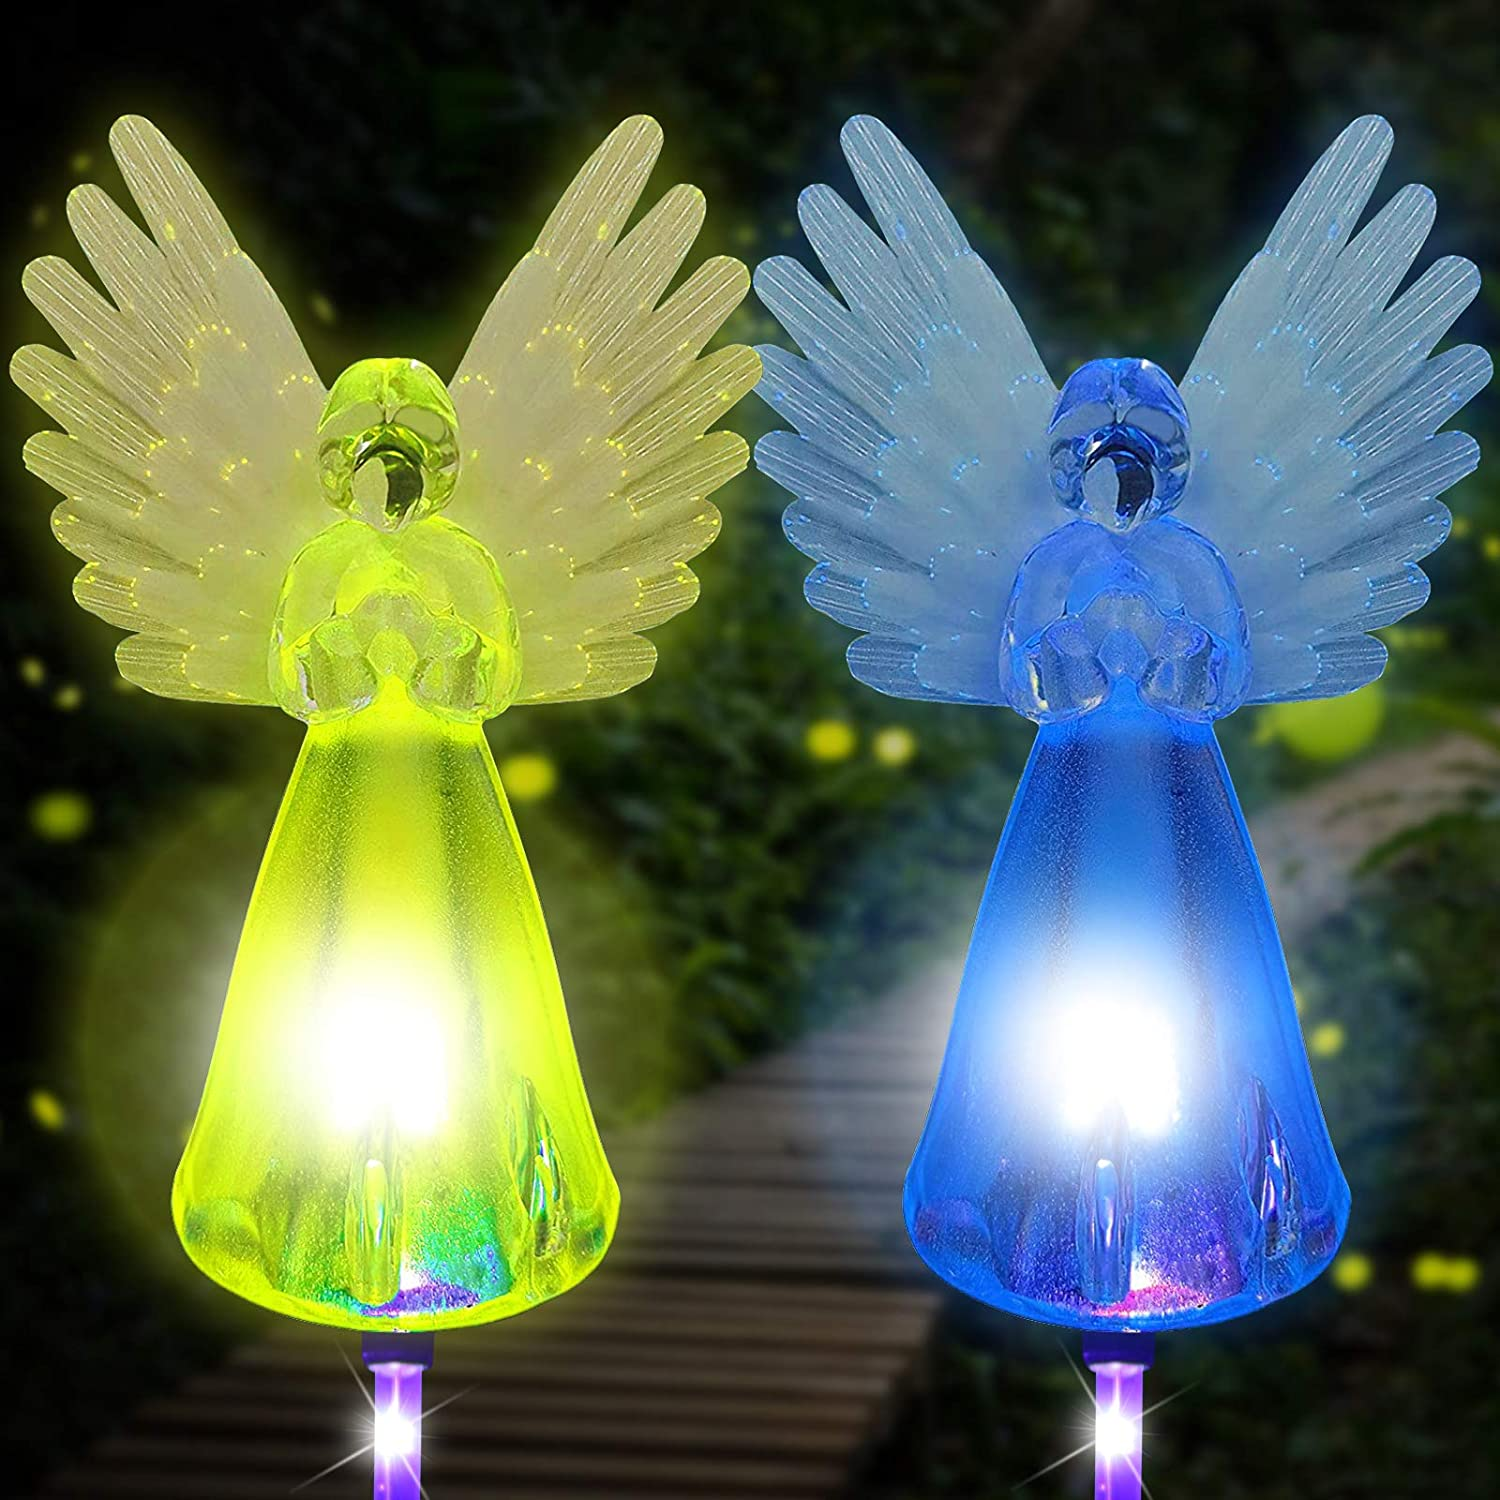 Solar Powered Angel Lights Outdoor, 2 Pack Garden Stake Light Landscape Path Lights Color Changing LED Waterproof Lawn Decorative Light for Patio Yard Cemetery Grave, Memorial Gifts for Loved Ones